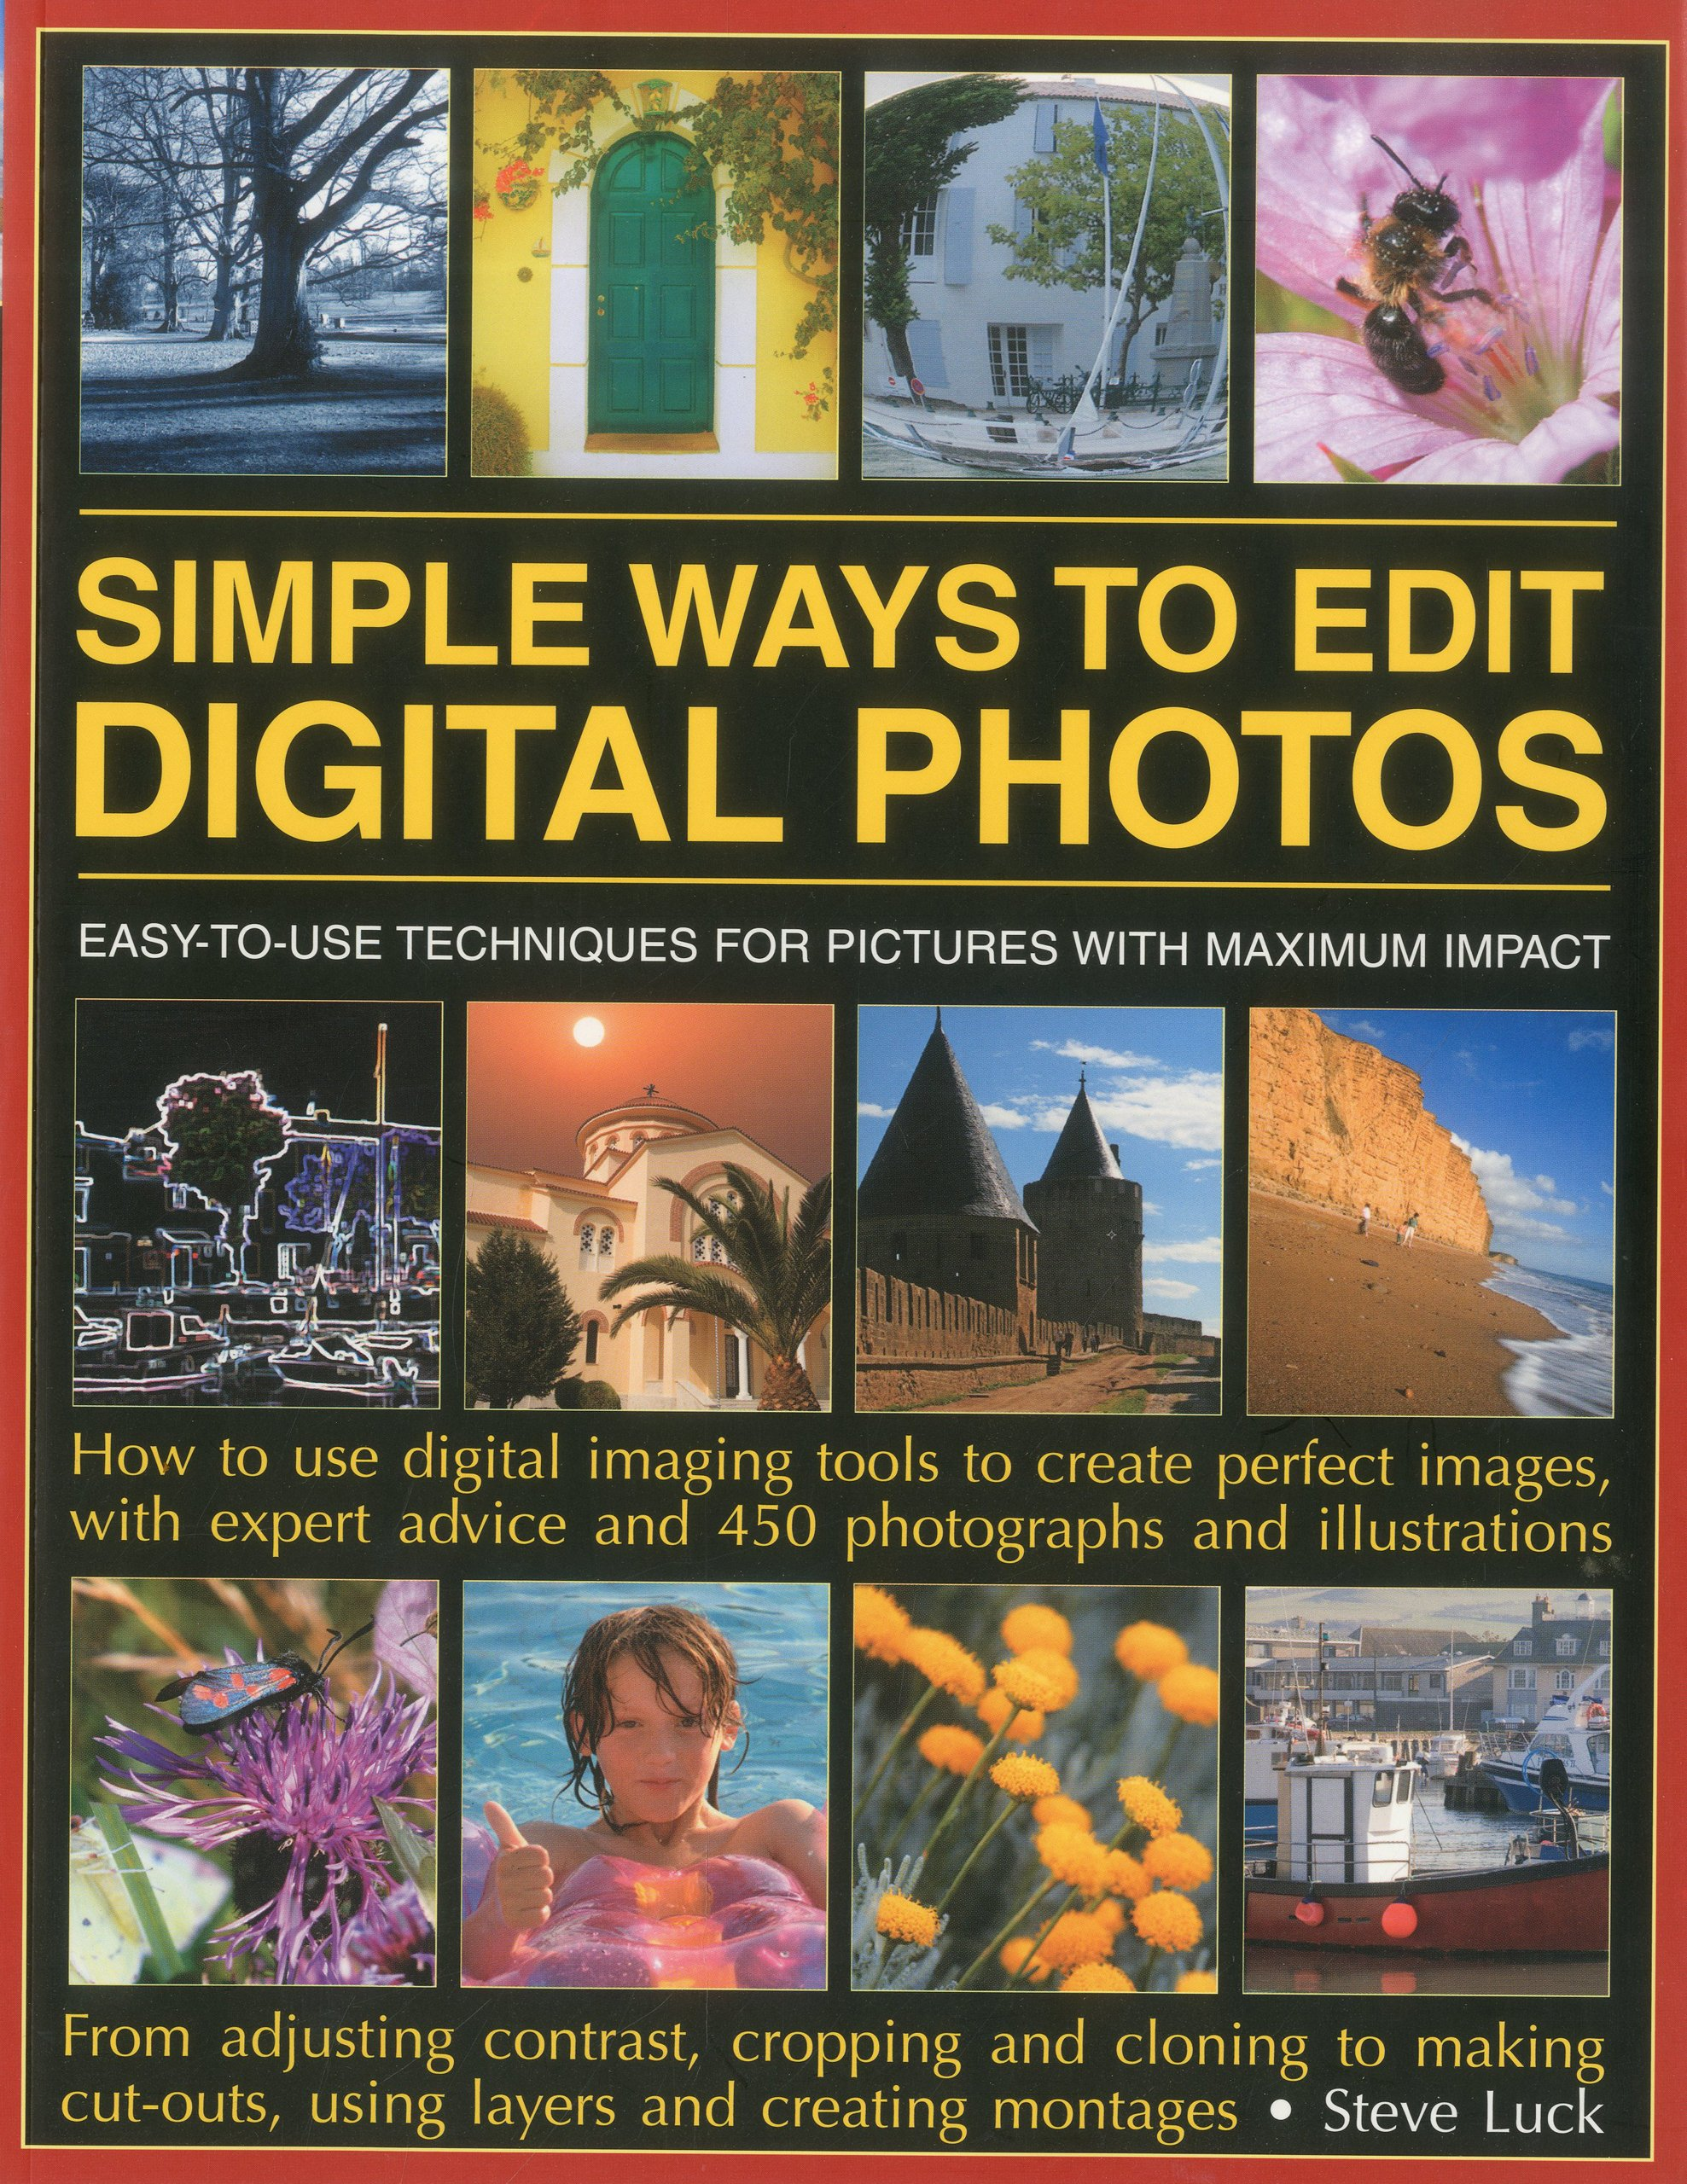 Simple Ways to Edit Digital Photos: Easy-to-use techniques for pictures with maximum impact: how to use digital imaging tools to create perfect ... advice and 450 photographs and illustrations